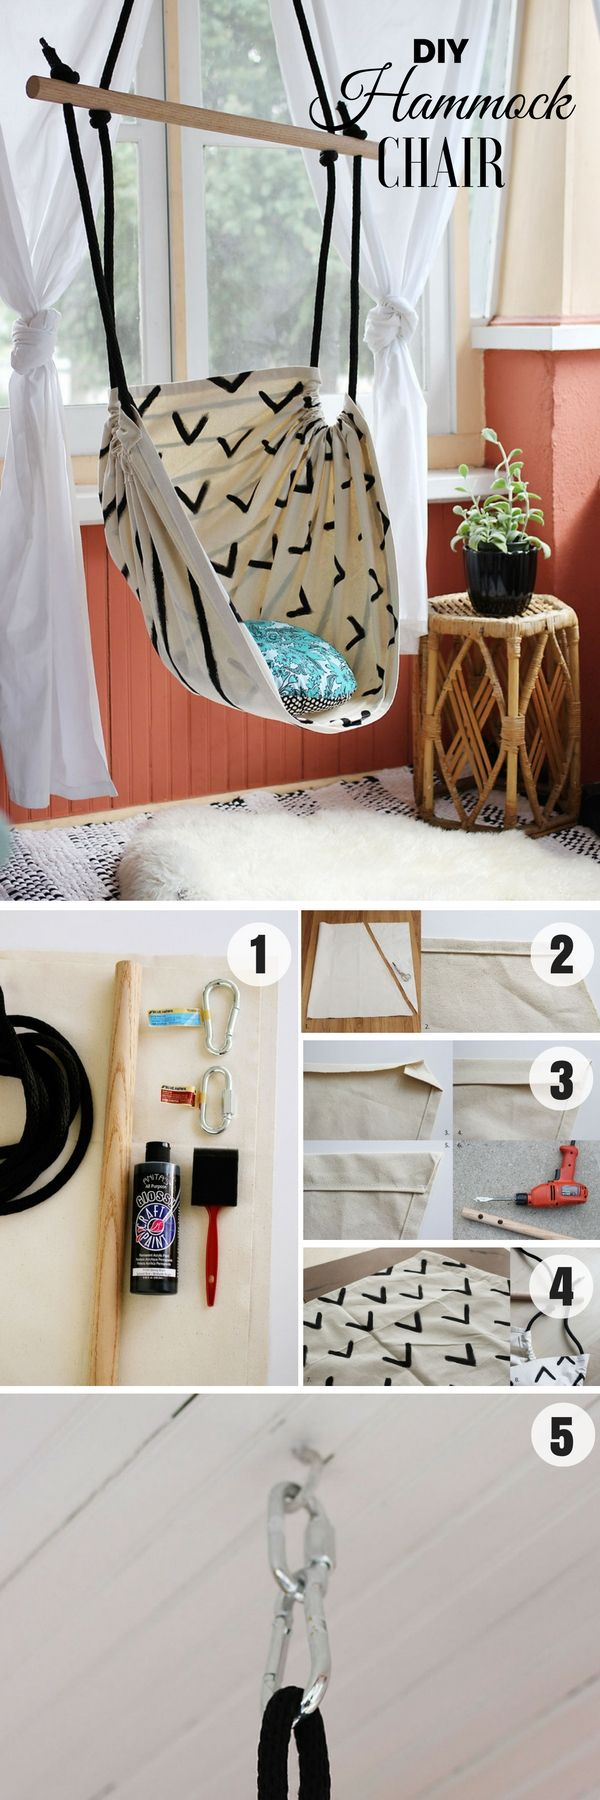 Interior Crafty Bedroom Ideas best 25 diy projects for bedroom ideas on pinterest teen decor room organization and dorm ideas